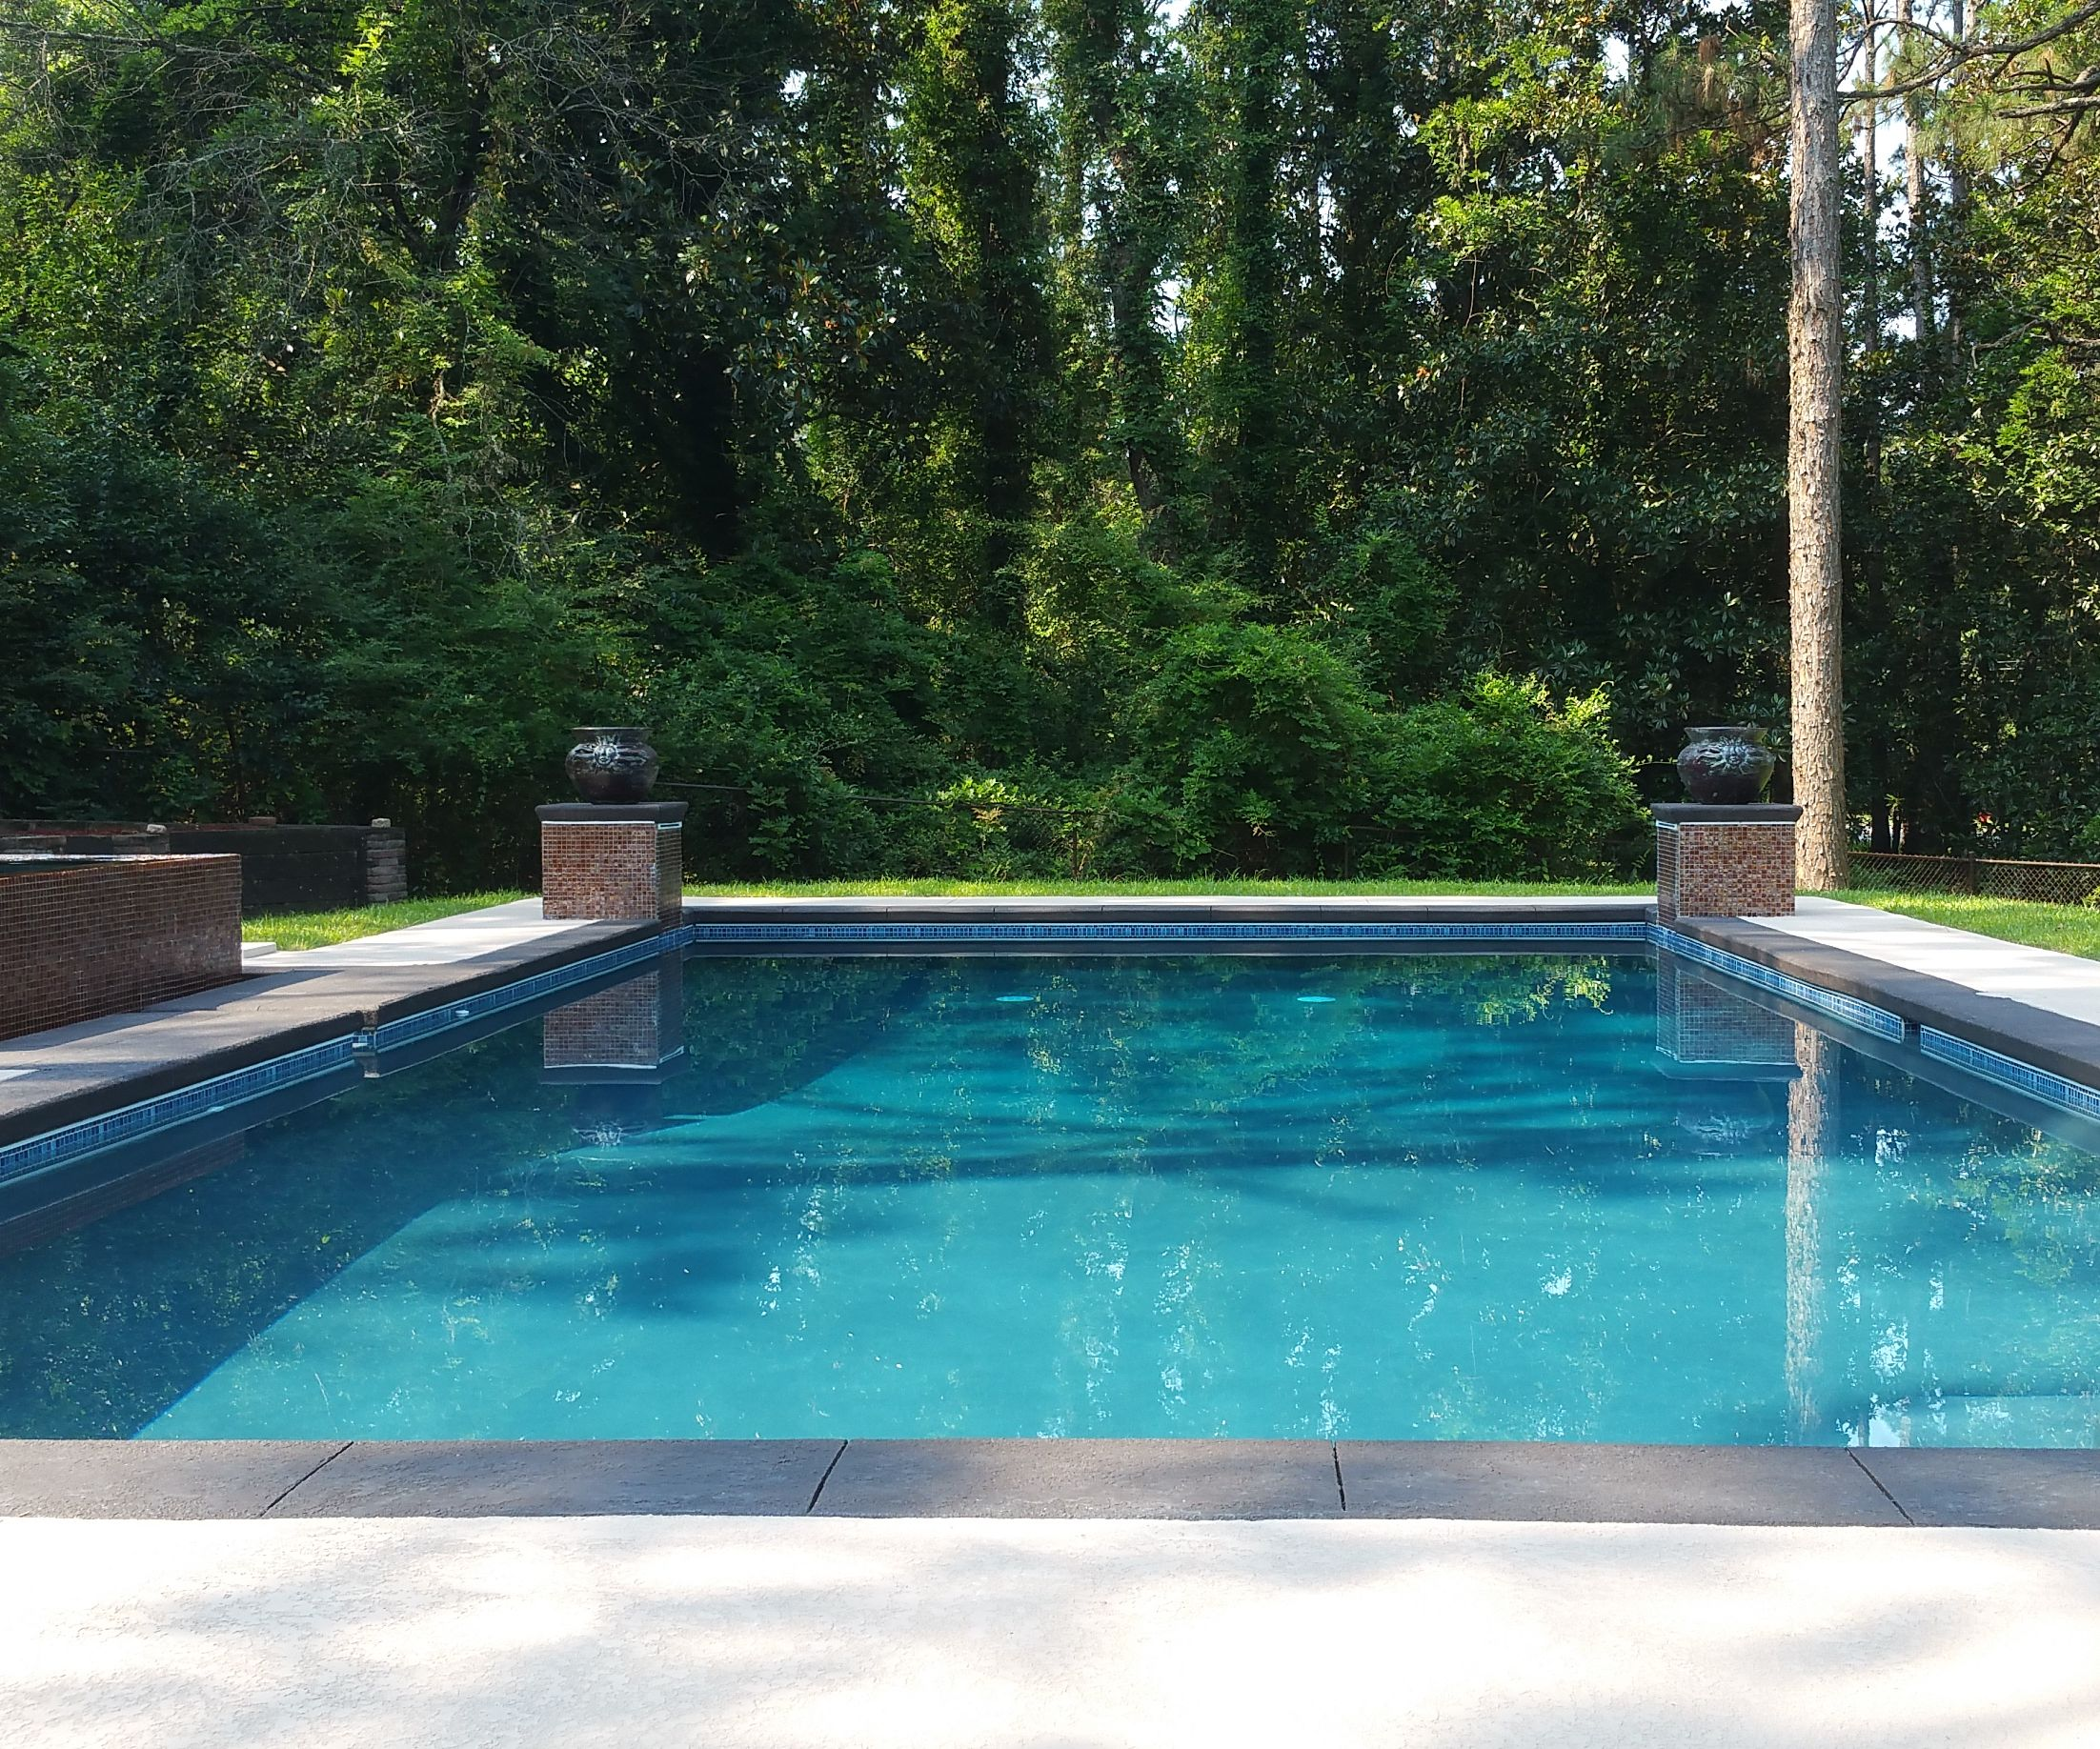 Web Enabled Pool Control - Raspberry Pi : 6 Steps (with Pictures) -  InstructablesInstructables